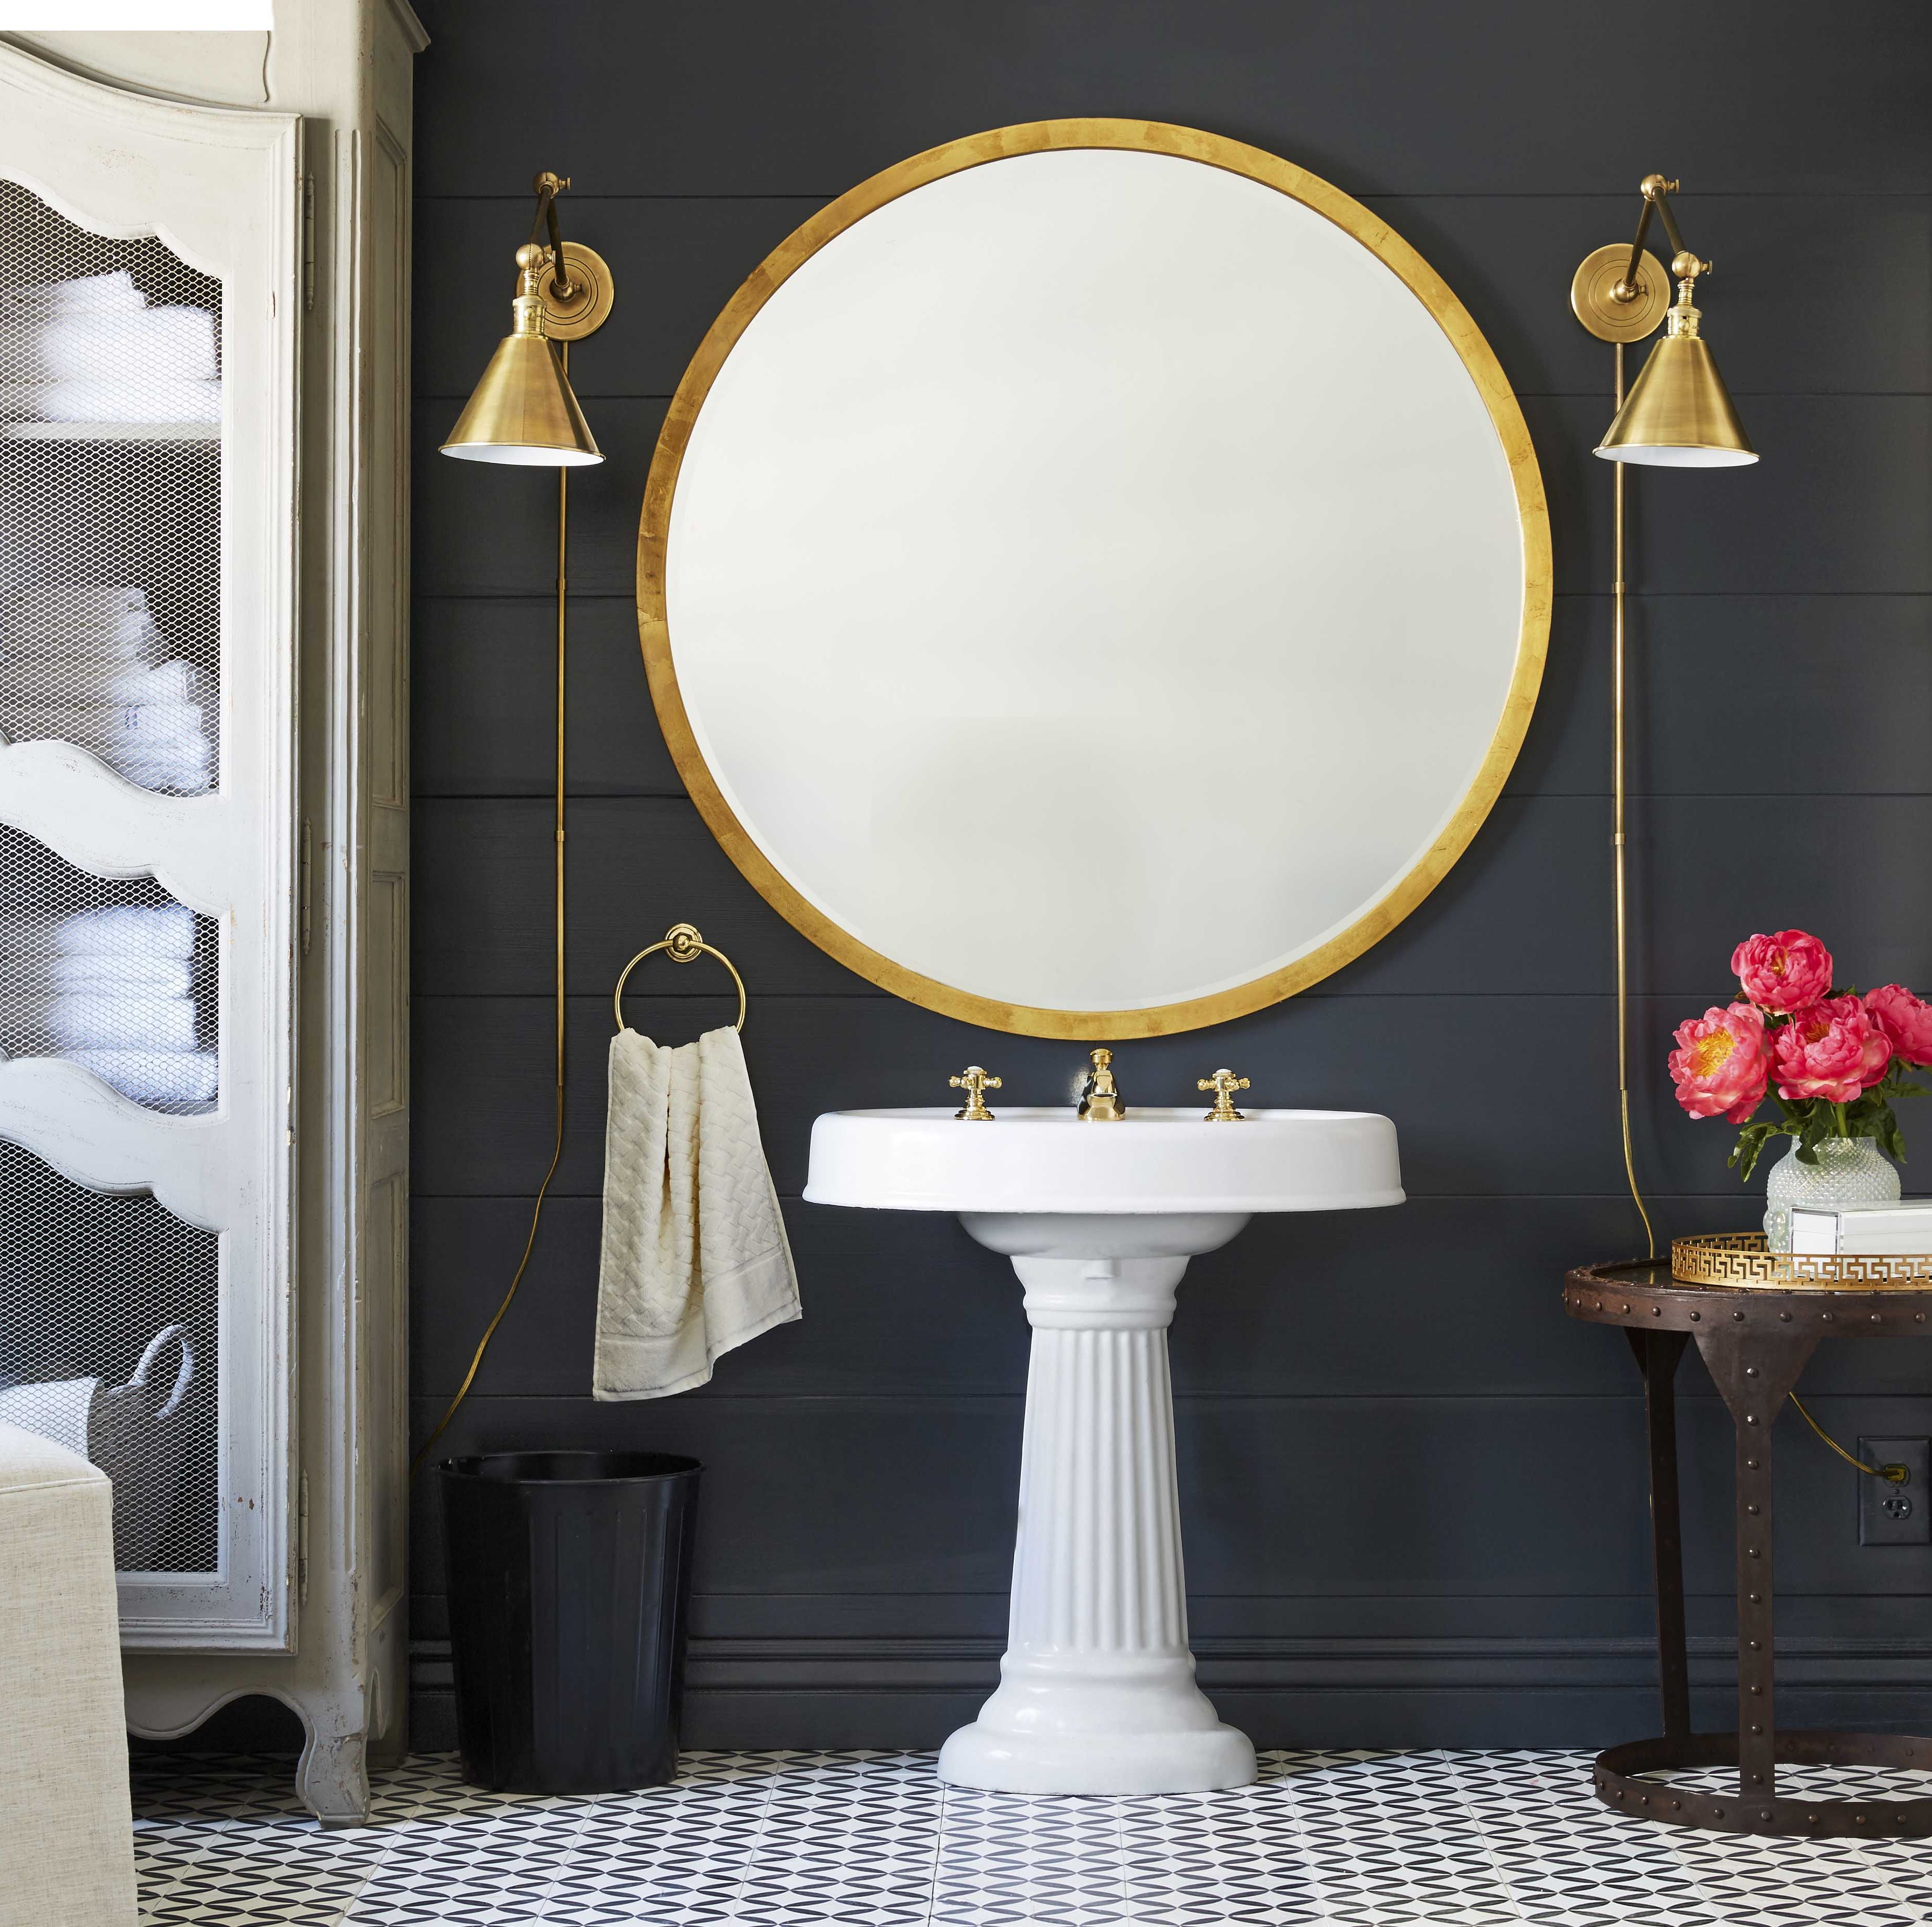 Best Paint Colors For Bathrooms 2020 Trends Images Of Roses